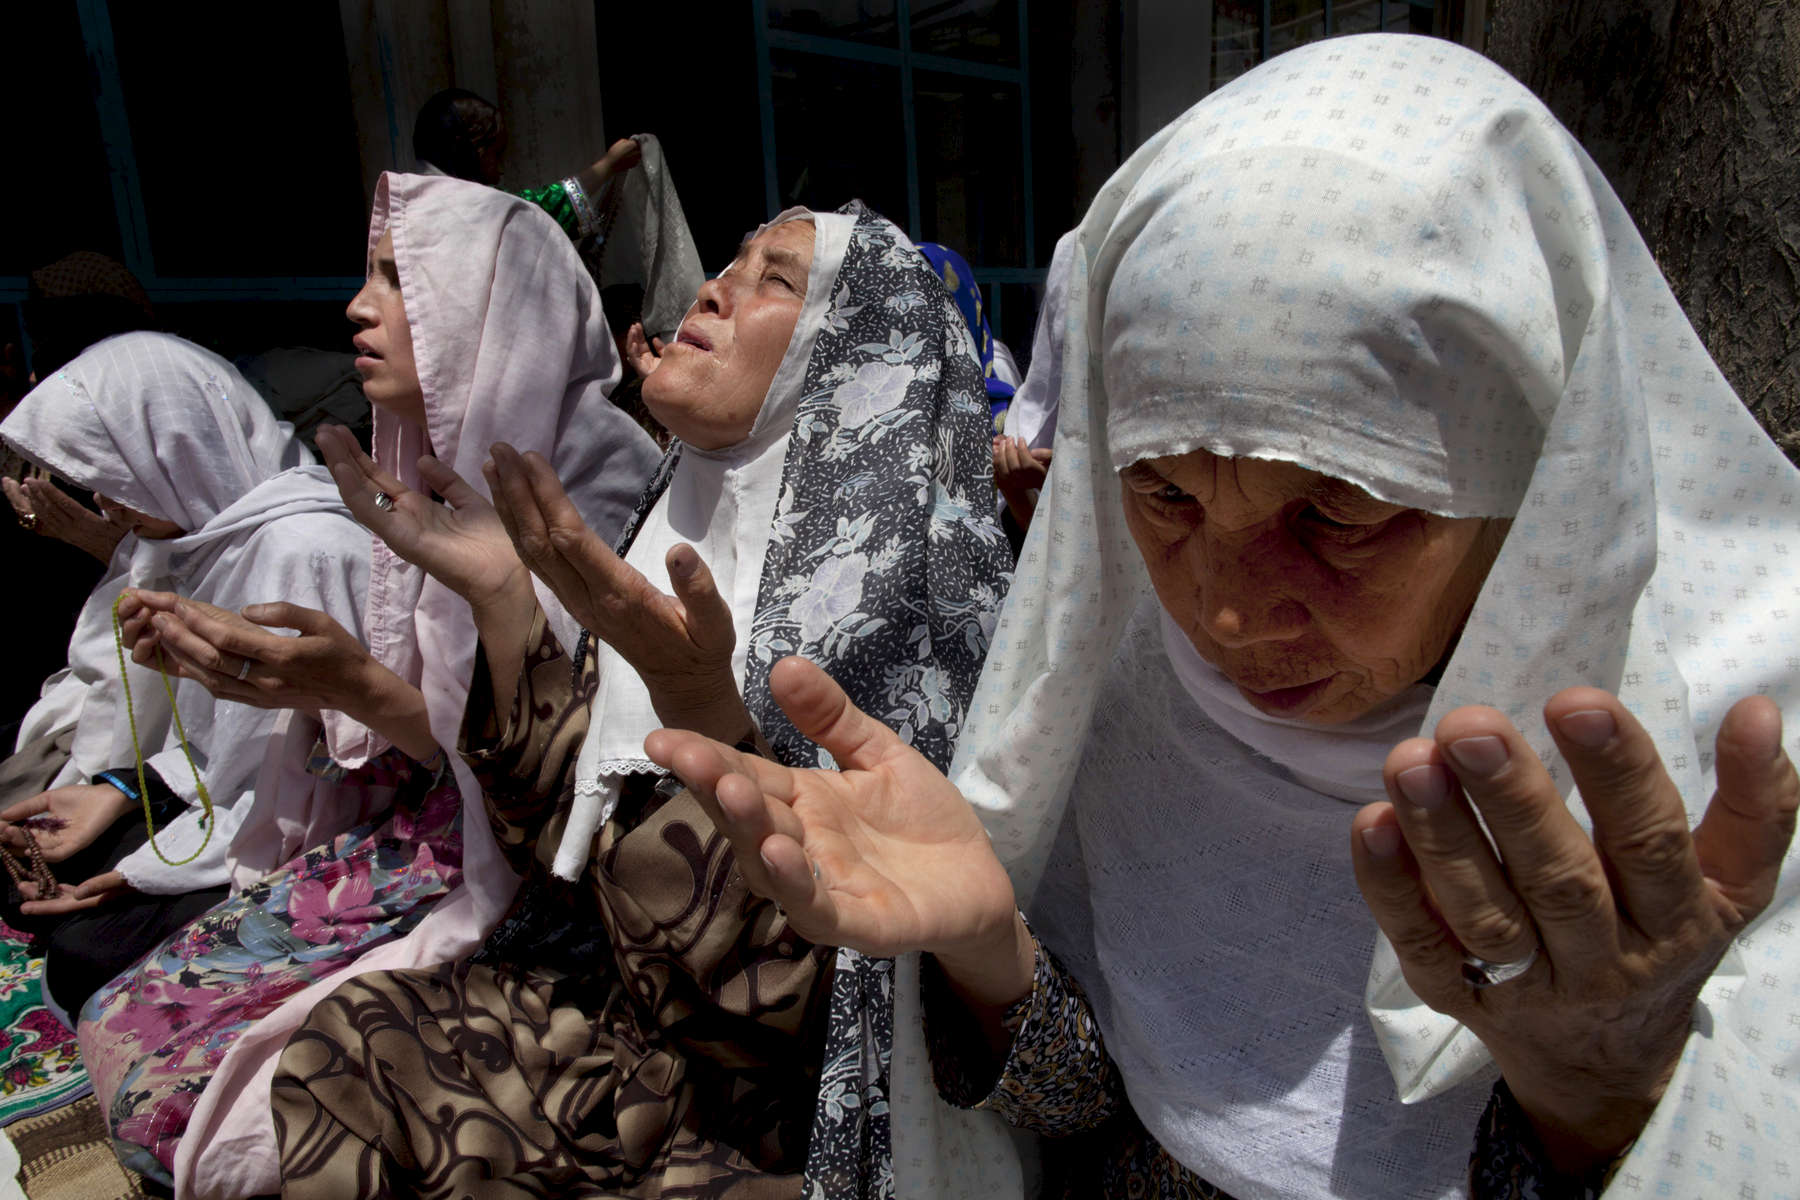 KABUL,  AFGHANISTAN -JUNE 3 : Afghan women pray during friday prayers at the Madinatul-Elm mosque on June 3, 2011 in Kabul, Afghanistan. Afghan women have completely separate sections inside the mosque from the men for prayer however in many parts of the country where violence and the Taliban are a way of life women only pray at home.(Photo by Paula Bronstein /Getty Images)